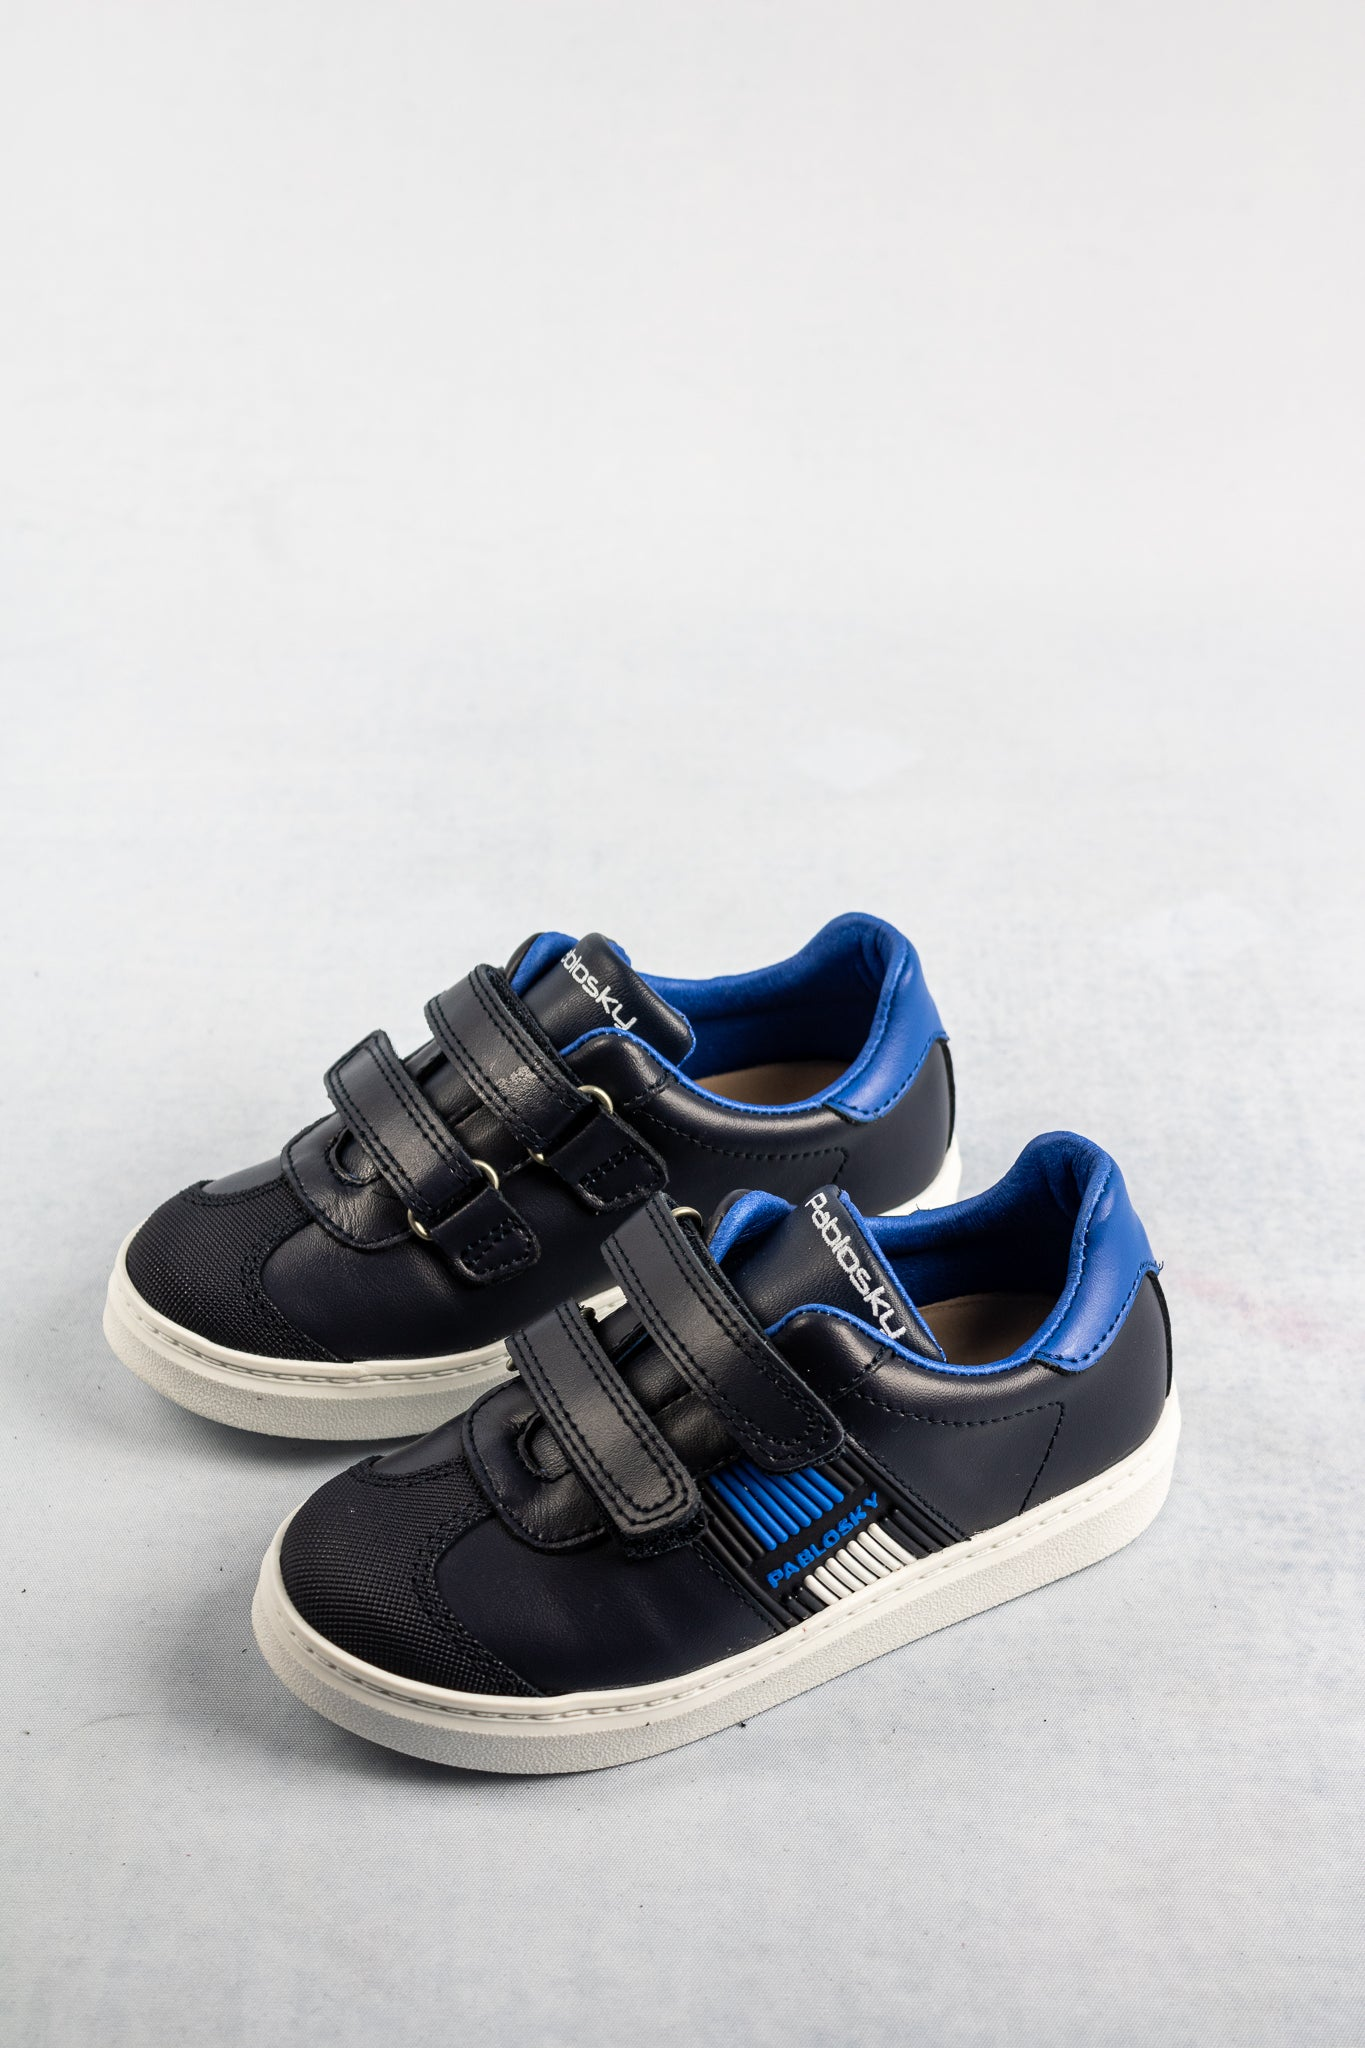 283124 Pablosky Blue Velcro Boys Trainers for sale online ireland